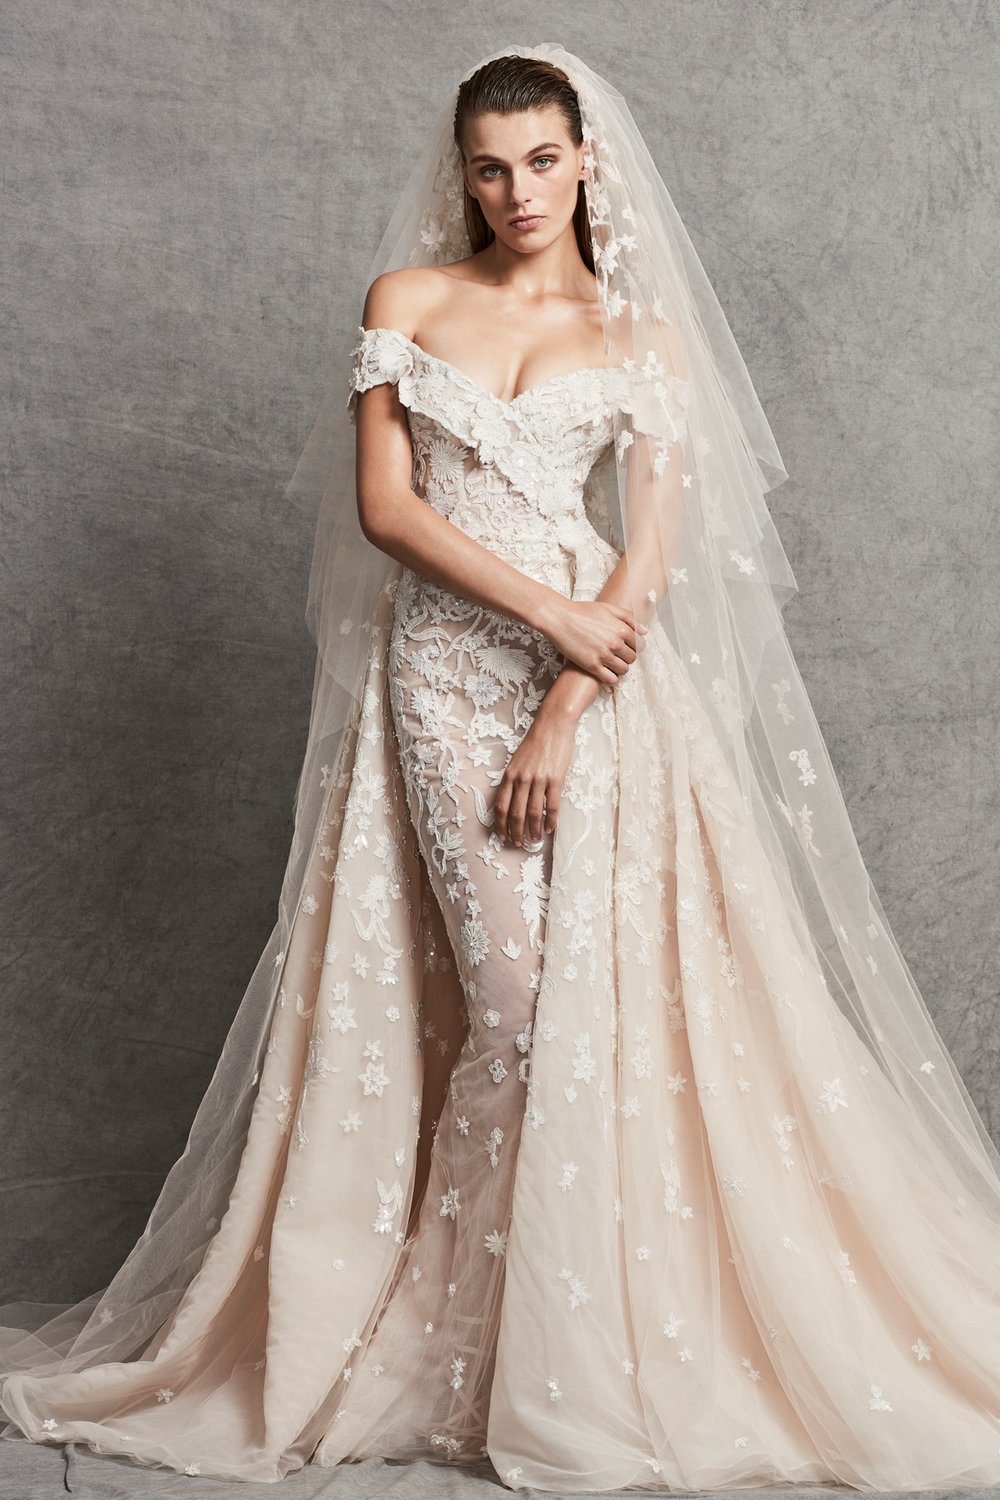 dream wedding dress .jpg